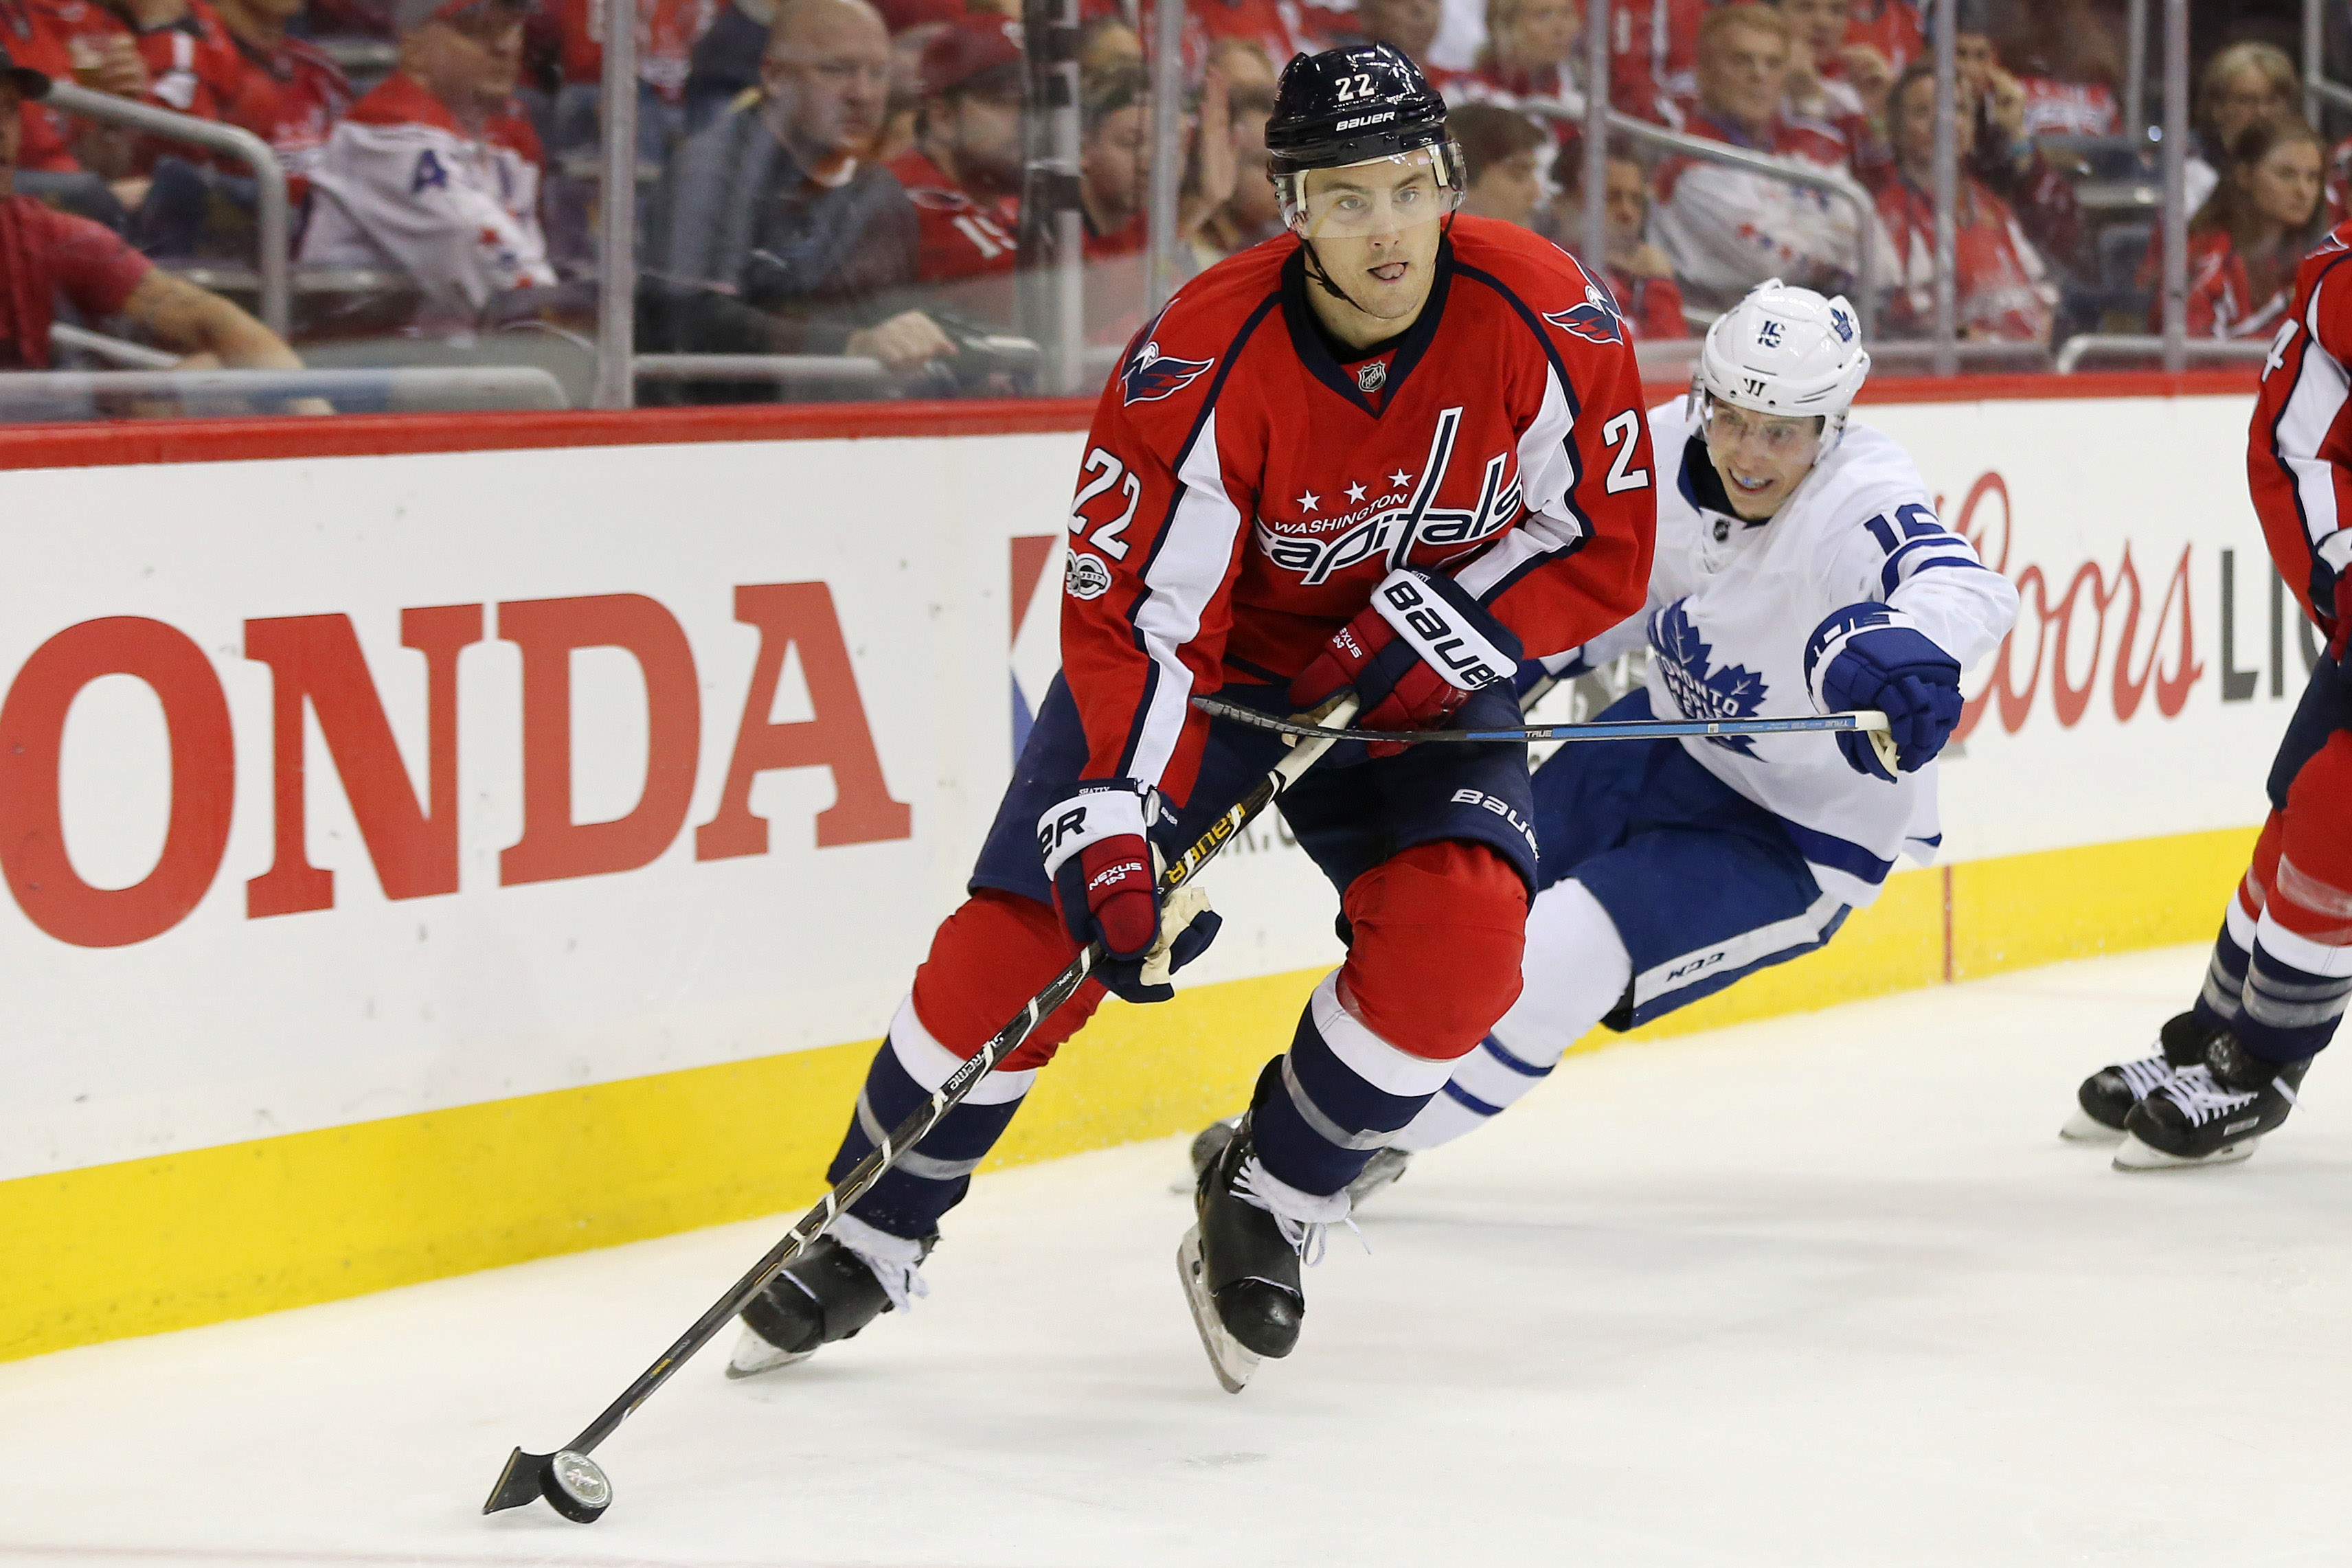 10030670-nhl-stanley-cup-playoffs-toronto-maple-leafs-at-washington-capitals